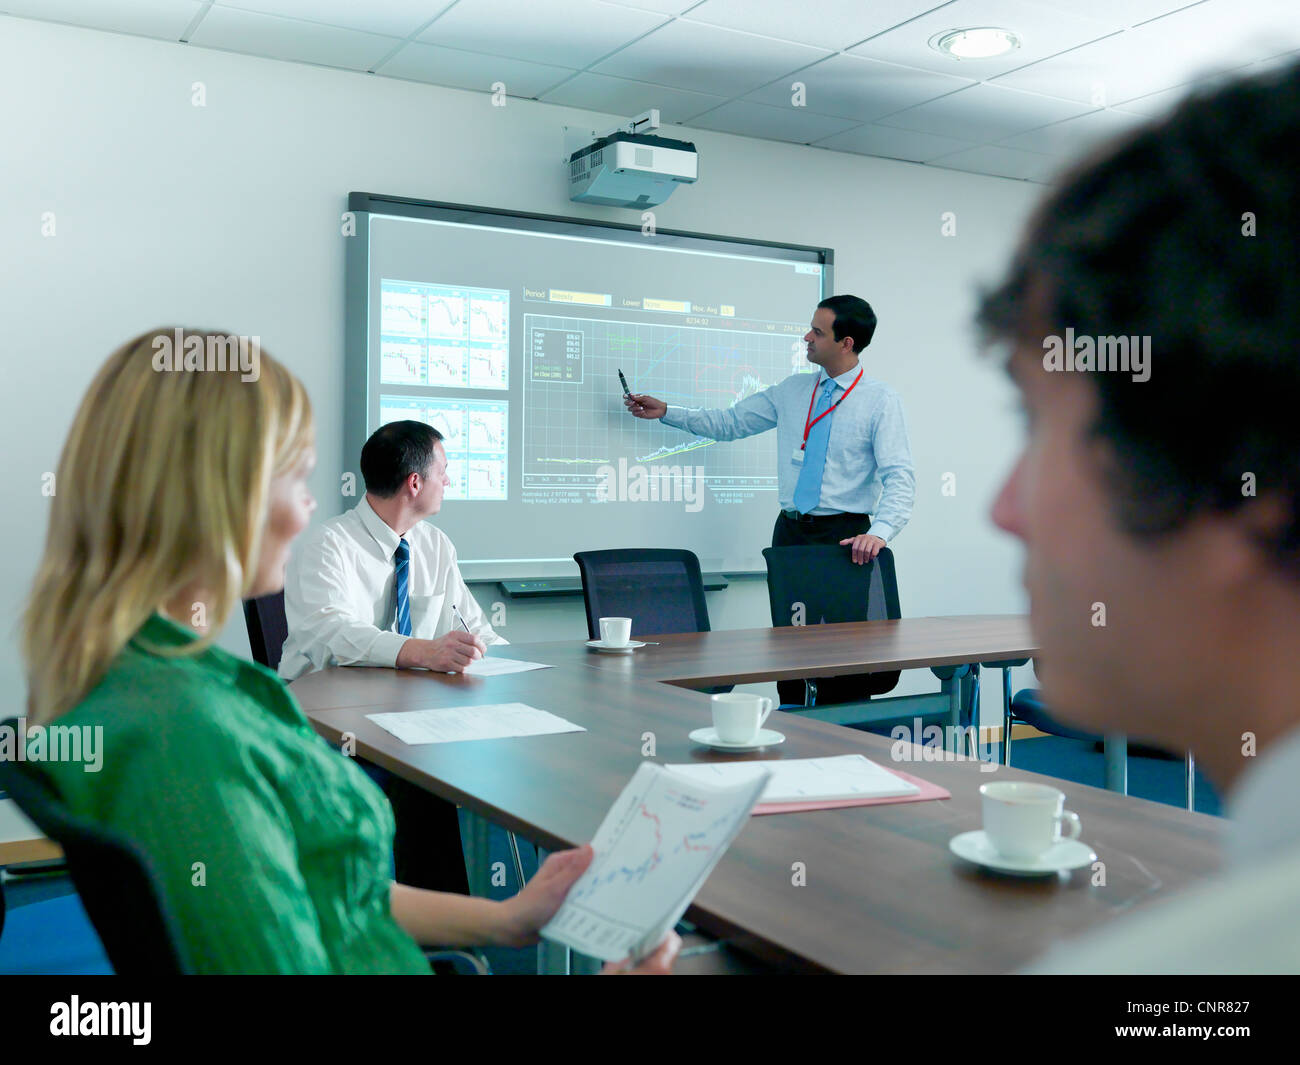 Businessman using projection in meeting Stock Photo